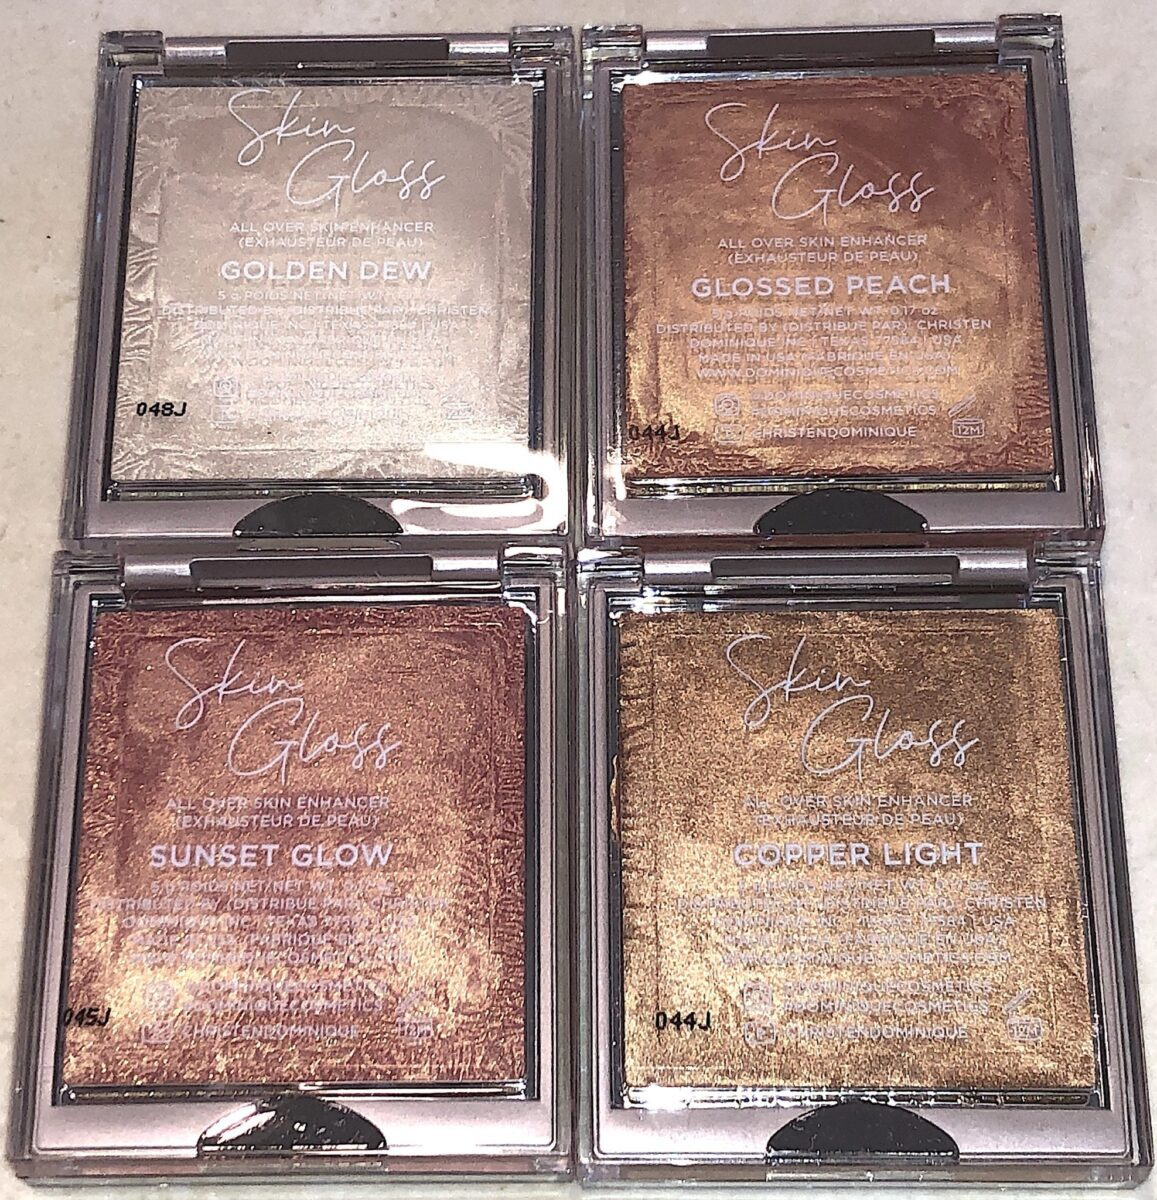 SEE THROUGH BACK OF SKIN GLOSS COMPACTS